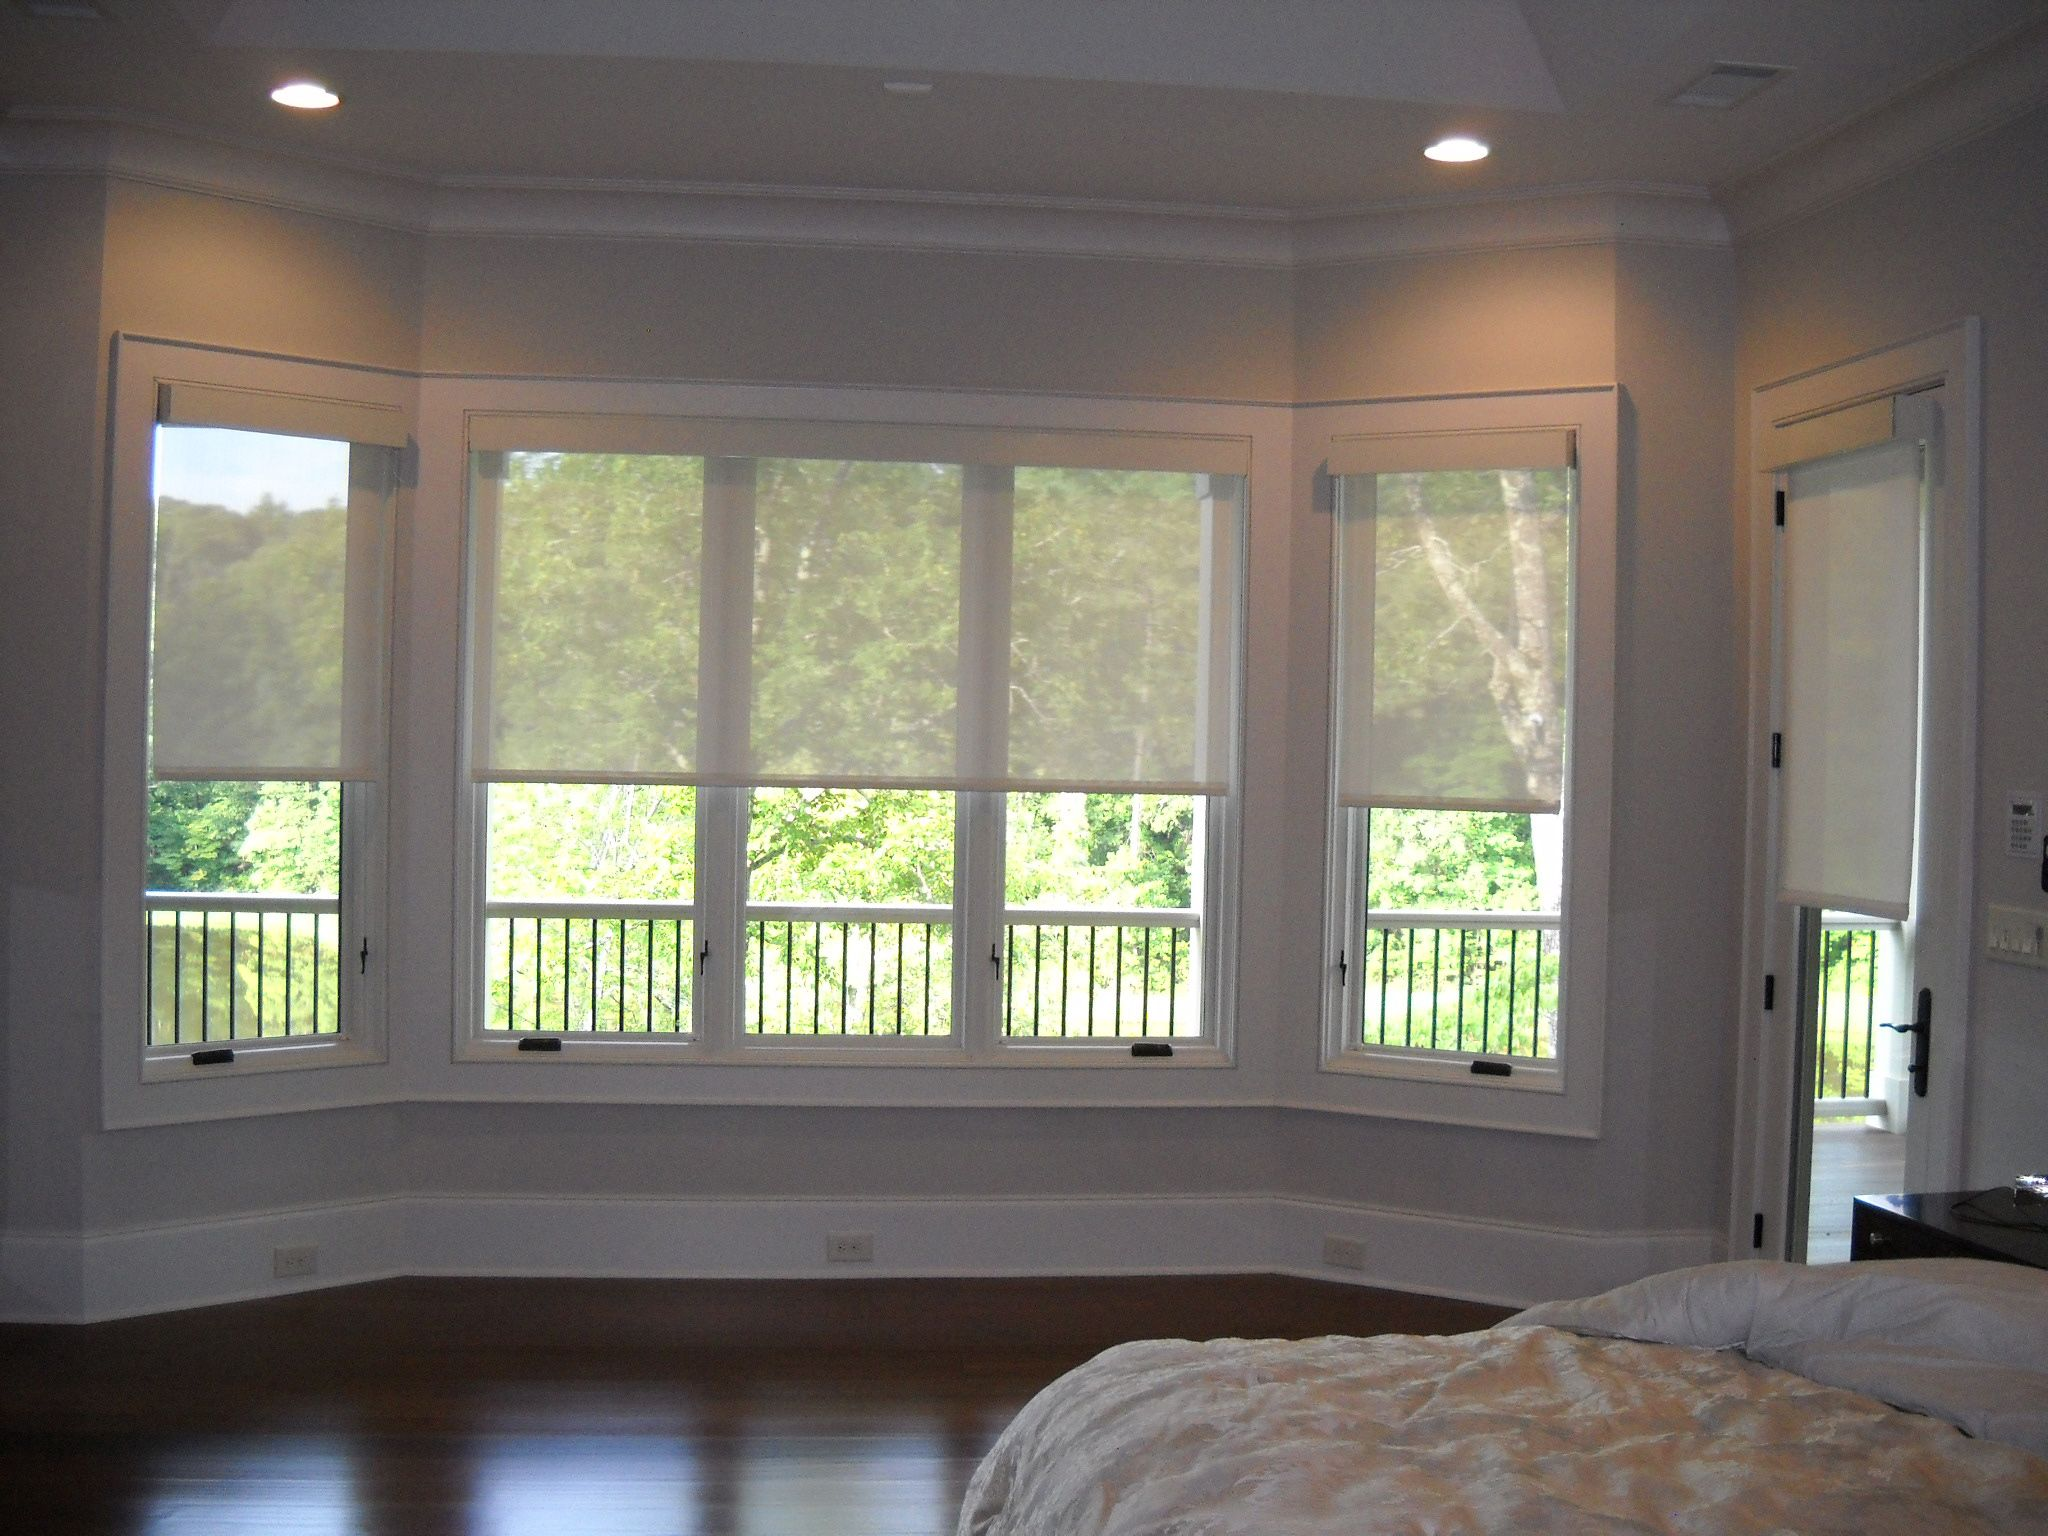 motorized solar shades halfway down bay window